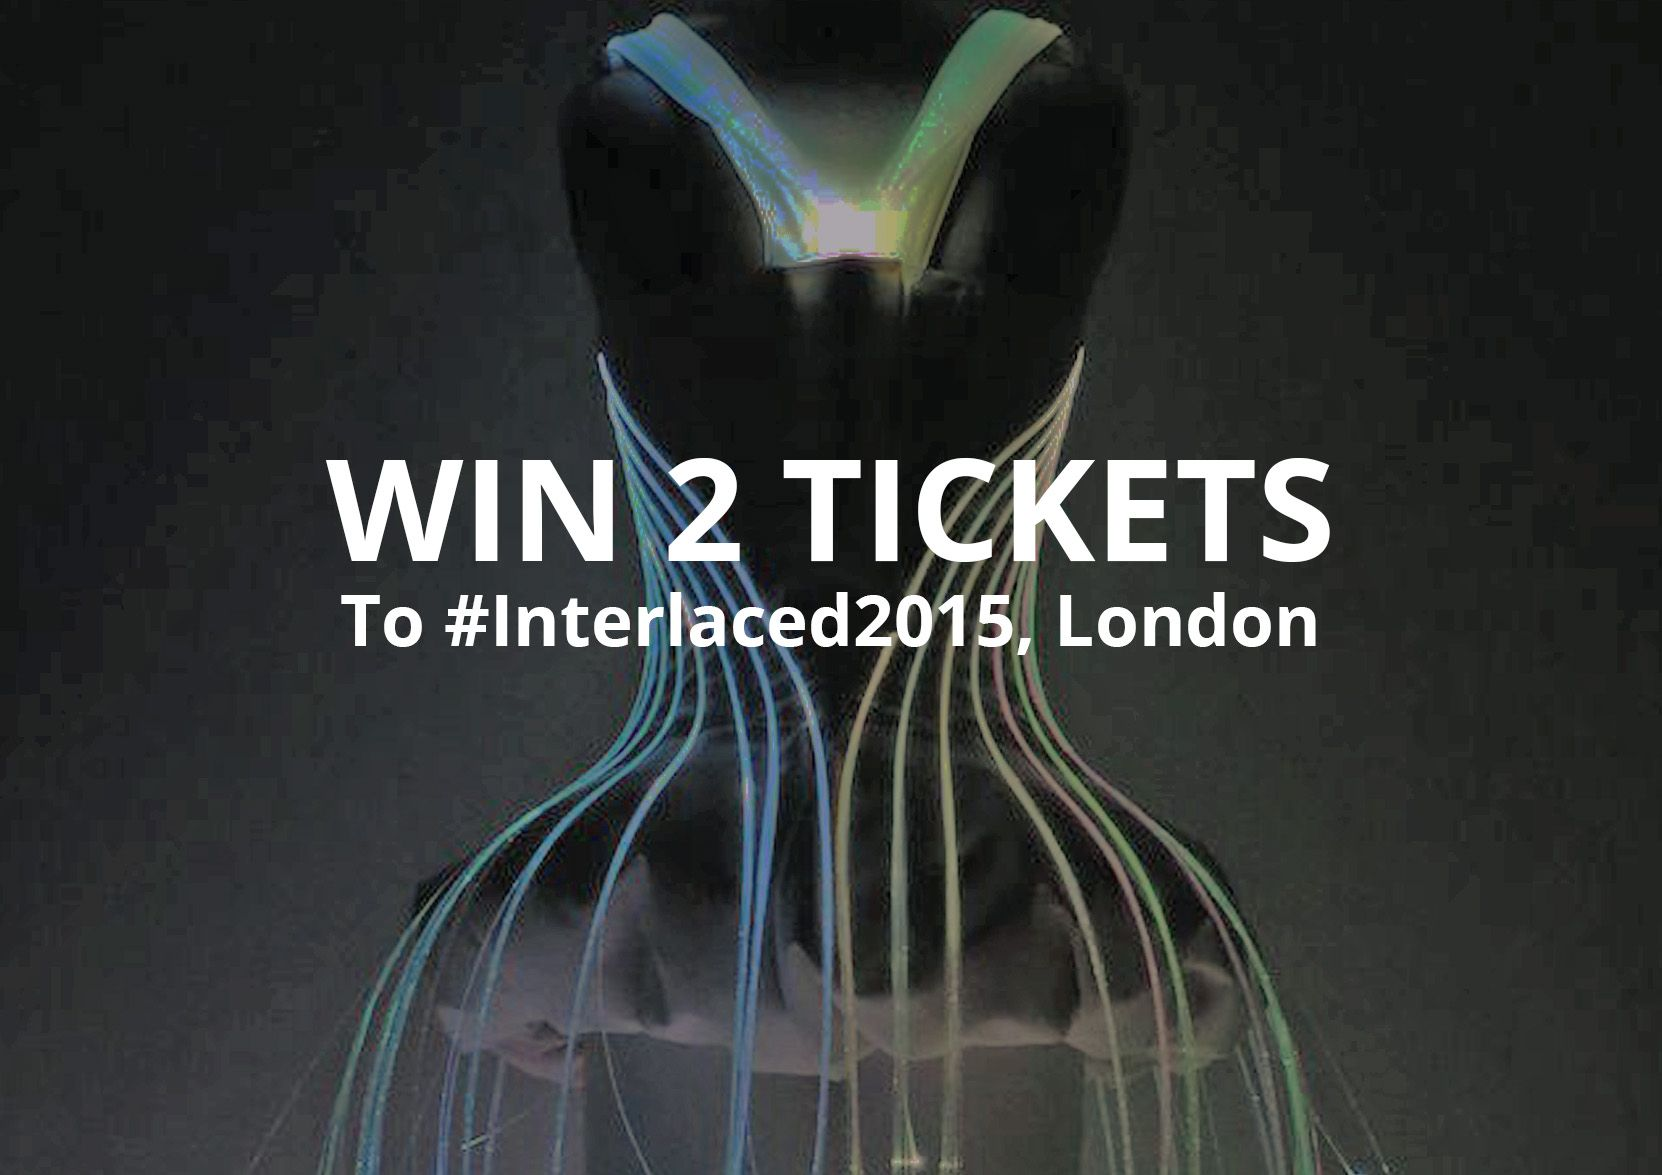 Want to Experience the Future of Fashion? Retweet on Twitter To Win 2 #Interlaced2015 Tickets. http://bit.ly/THERules